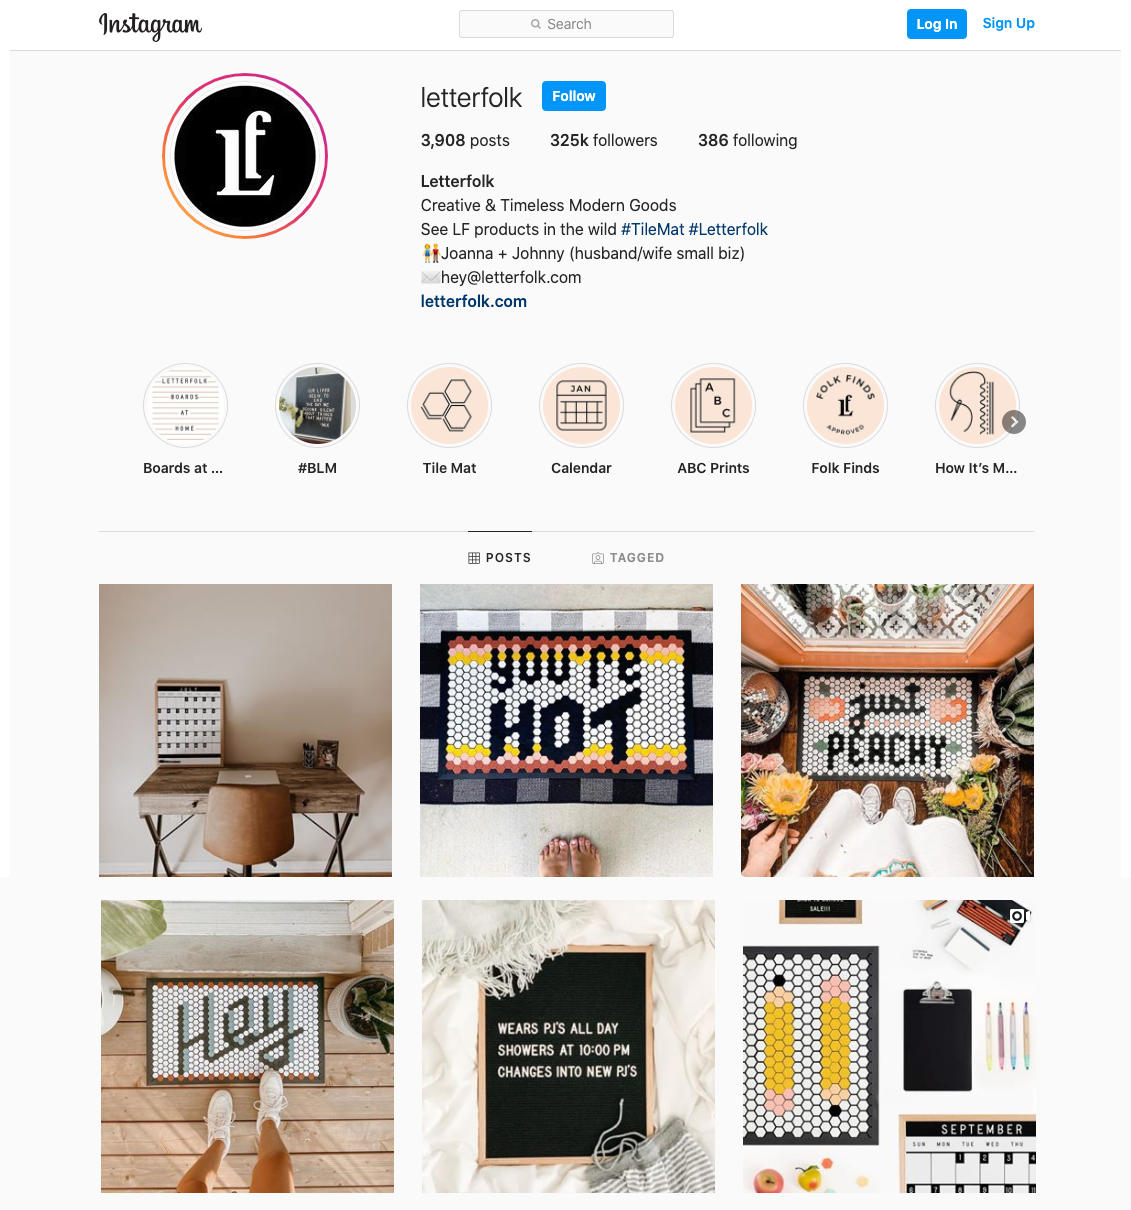 Letterfolk Instagram Profile